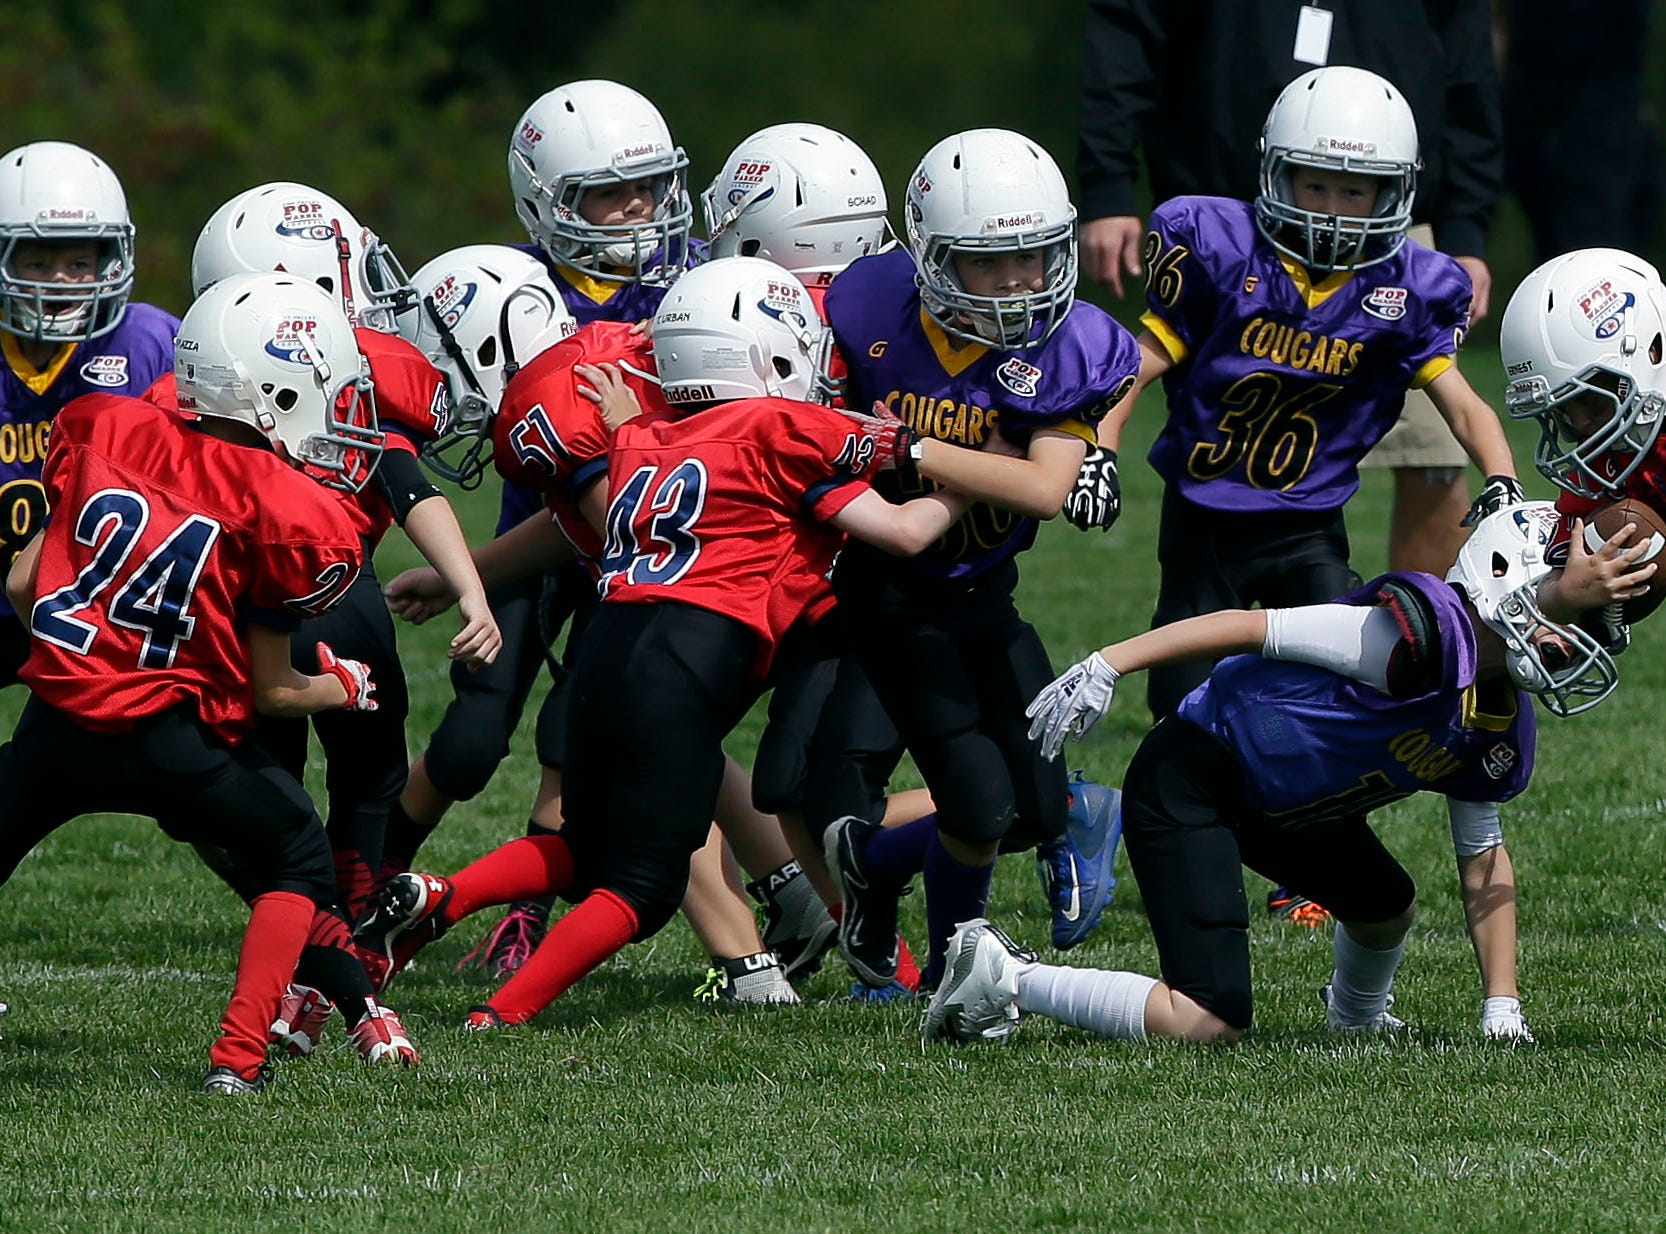 The Cougars and Ghosts play as Fox Valley Pop Warner Football opens the season Saturday, September 8, 2018, at Plamann Park in Grand Chute, Wis.Ron Page/USA TODAY NETWORK-Wisconsin